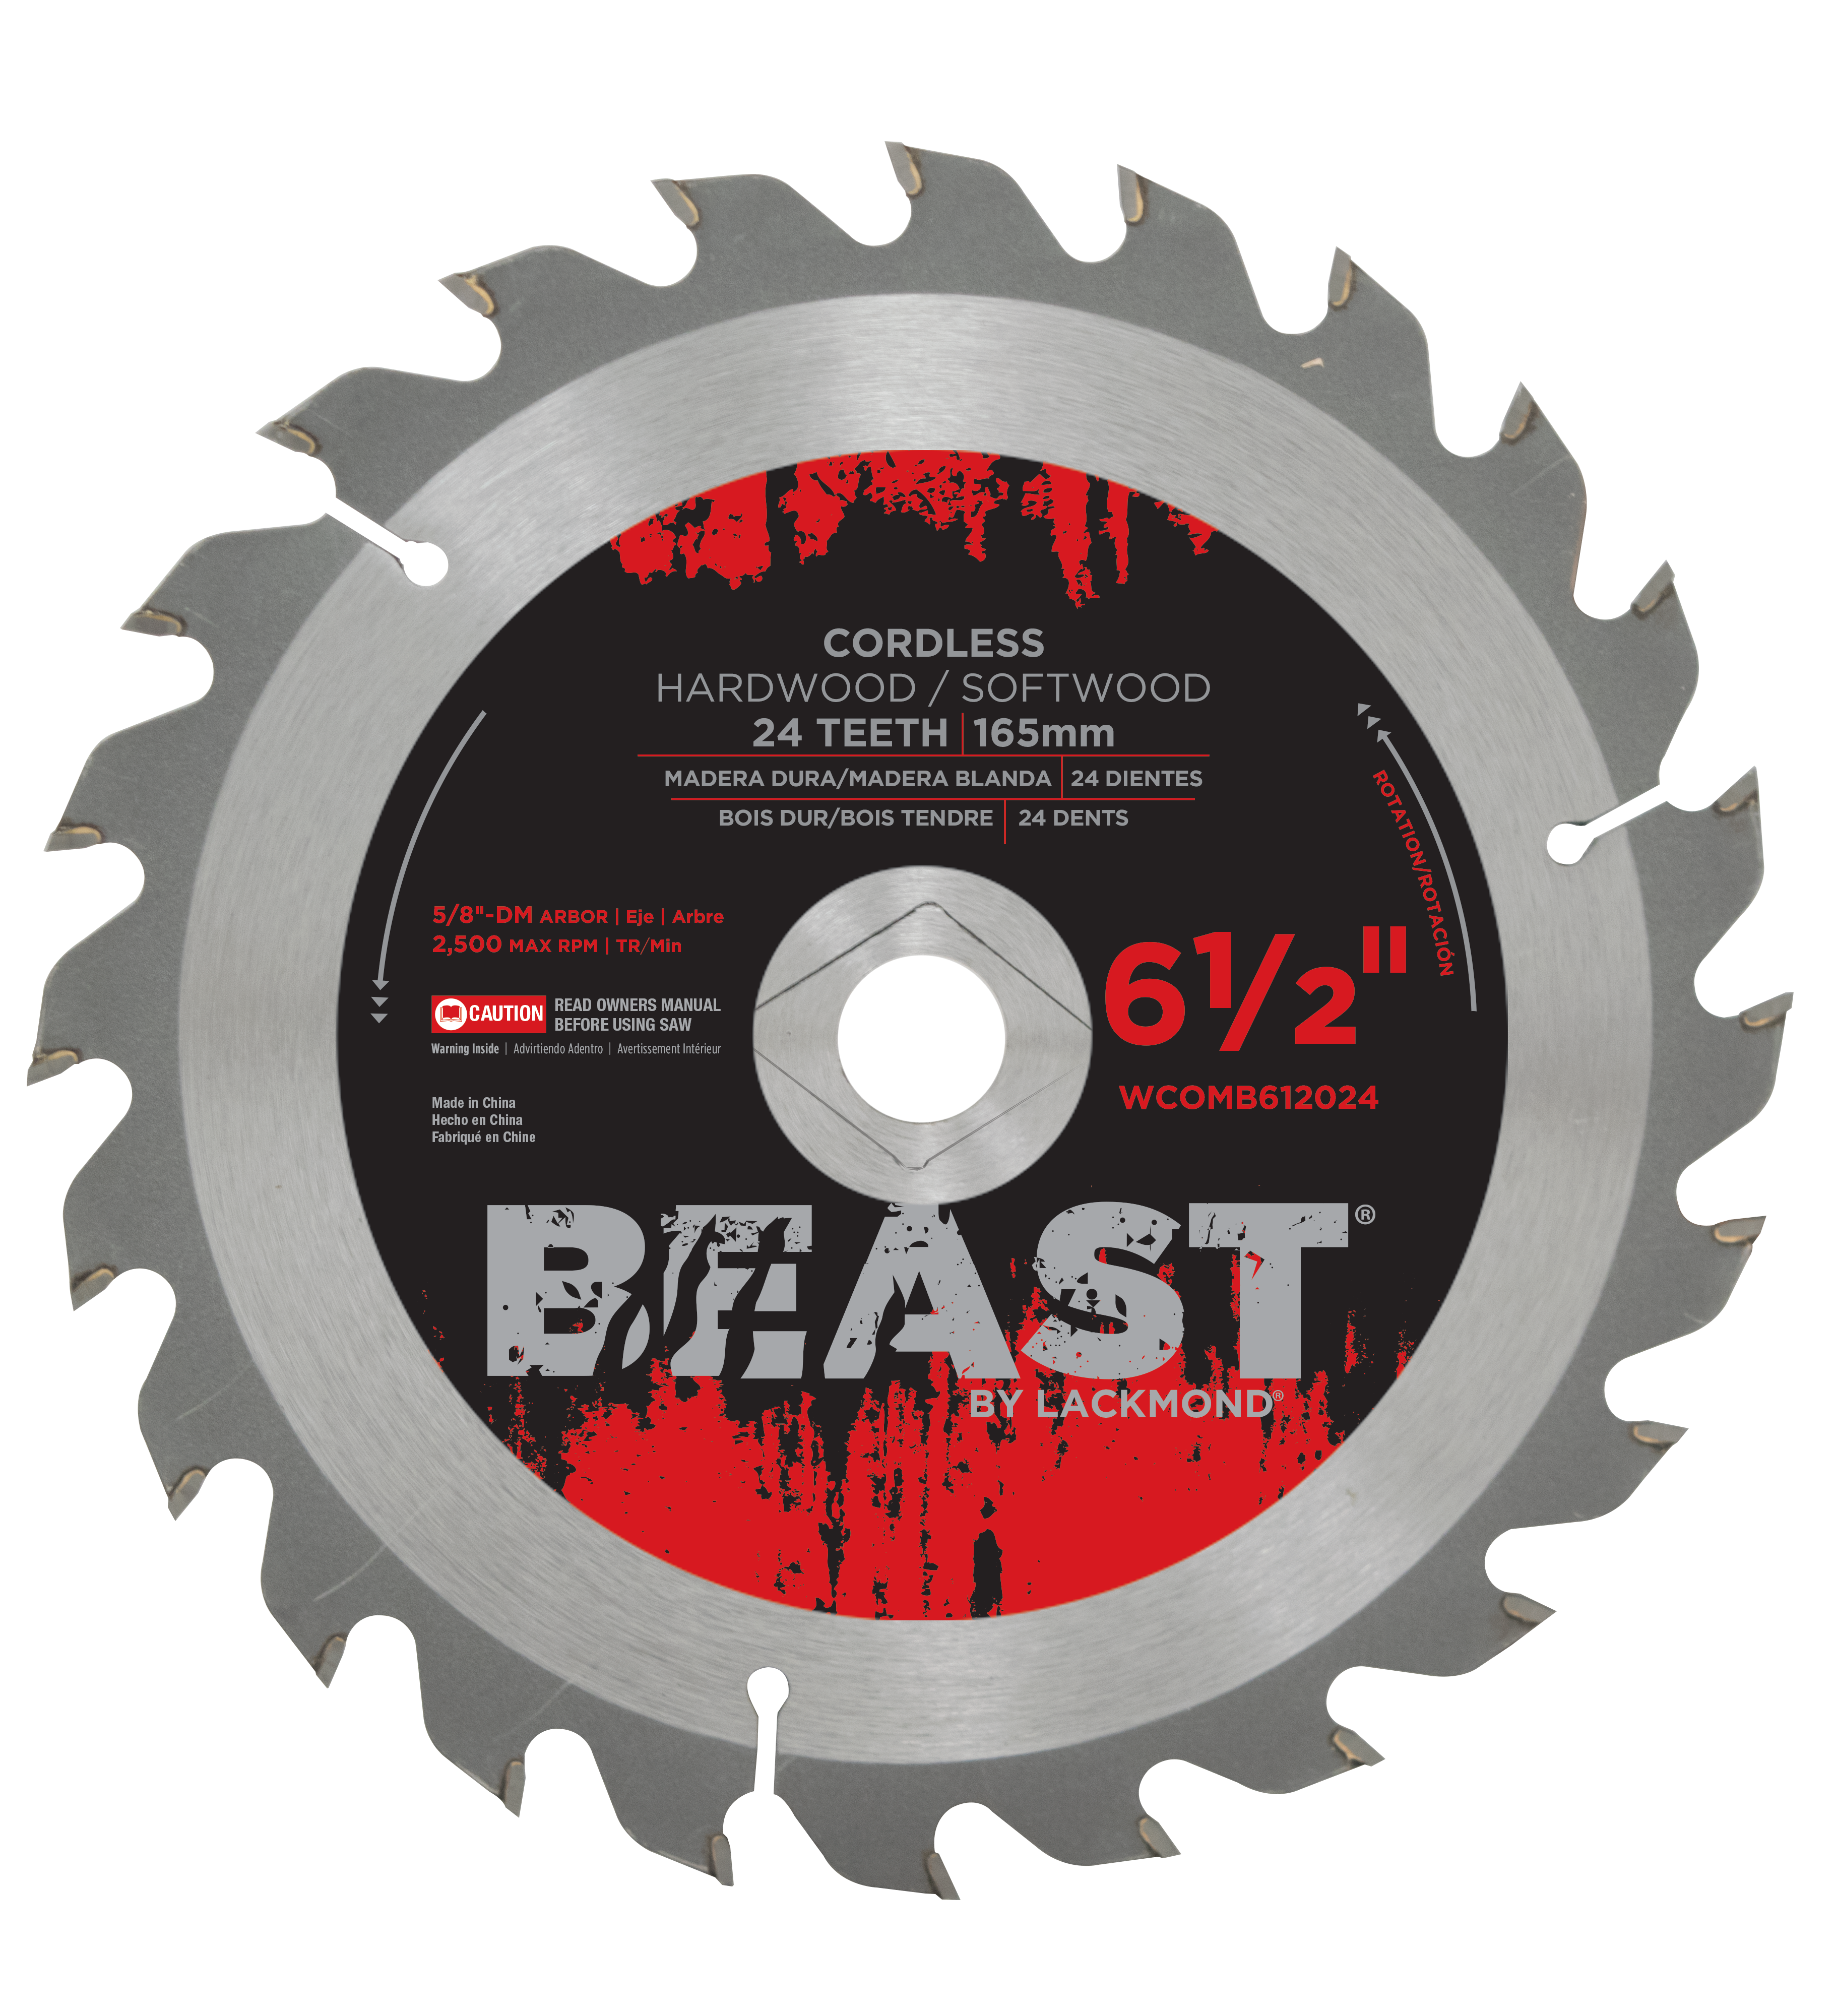 Gray blade saw png. Beast cordless blades non